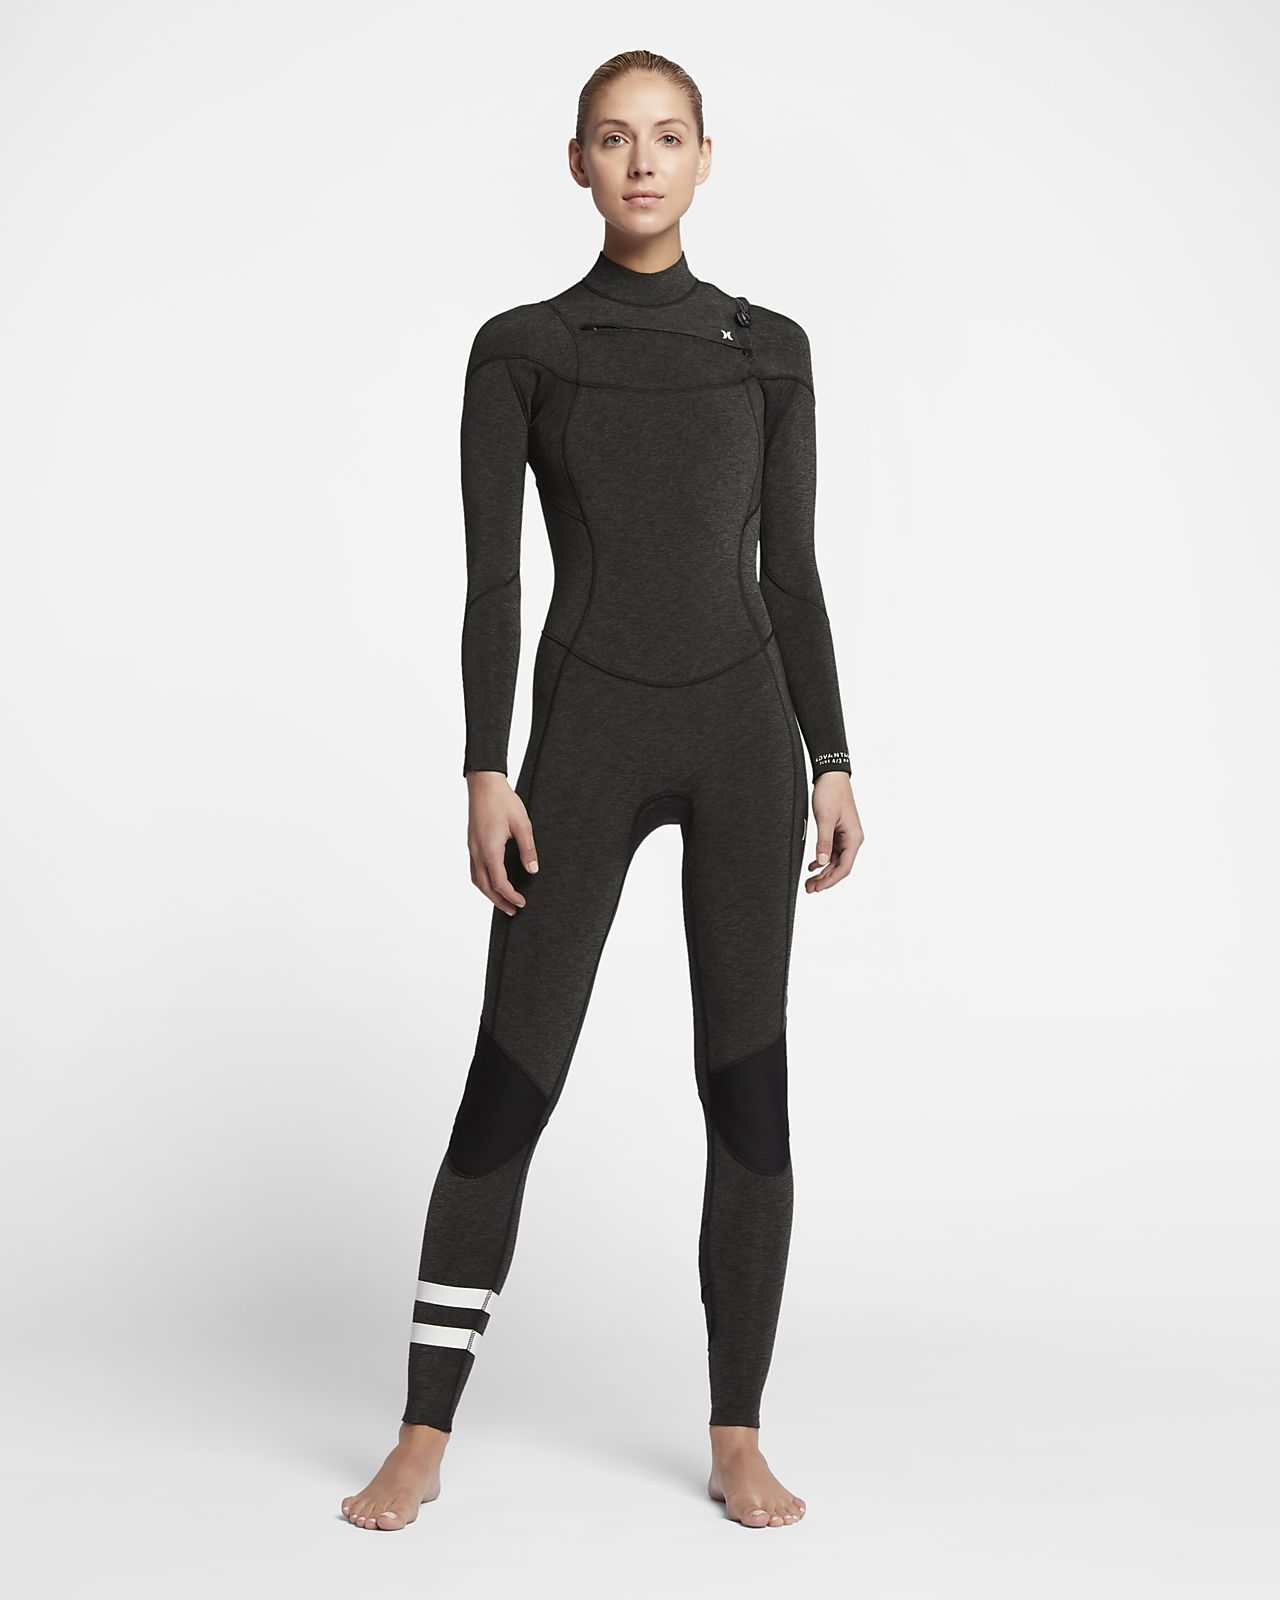 Hurley Advantage Plus 4/3mm Fullsuit Women's Wetsuit